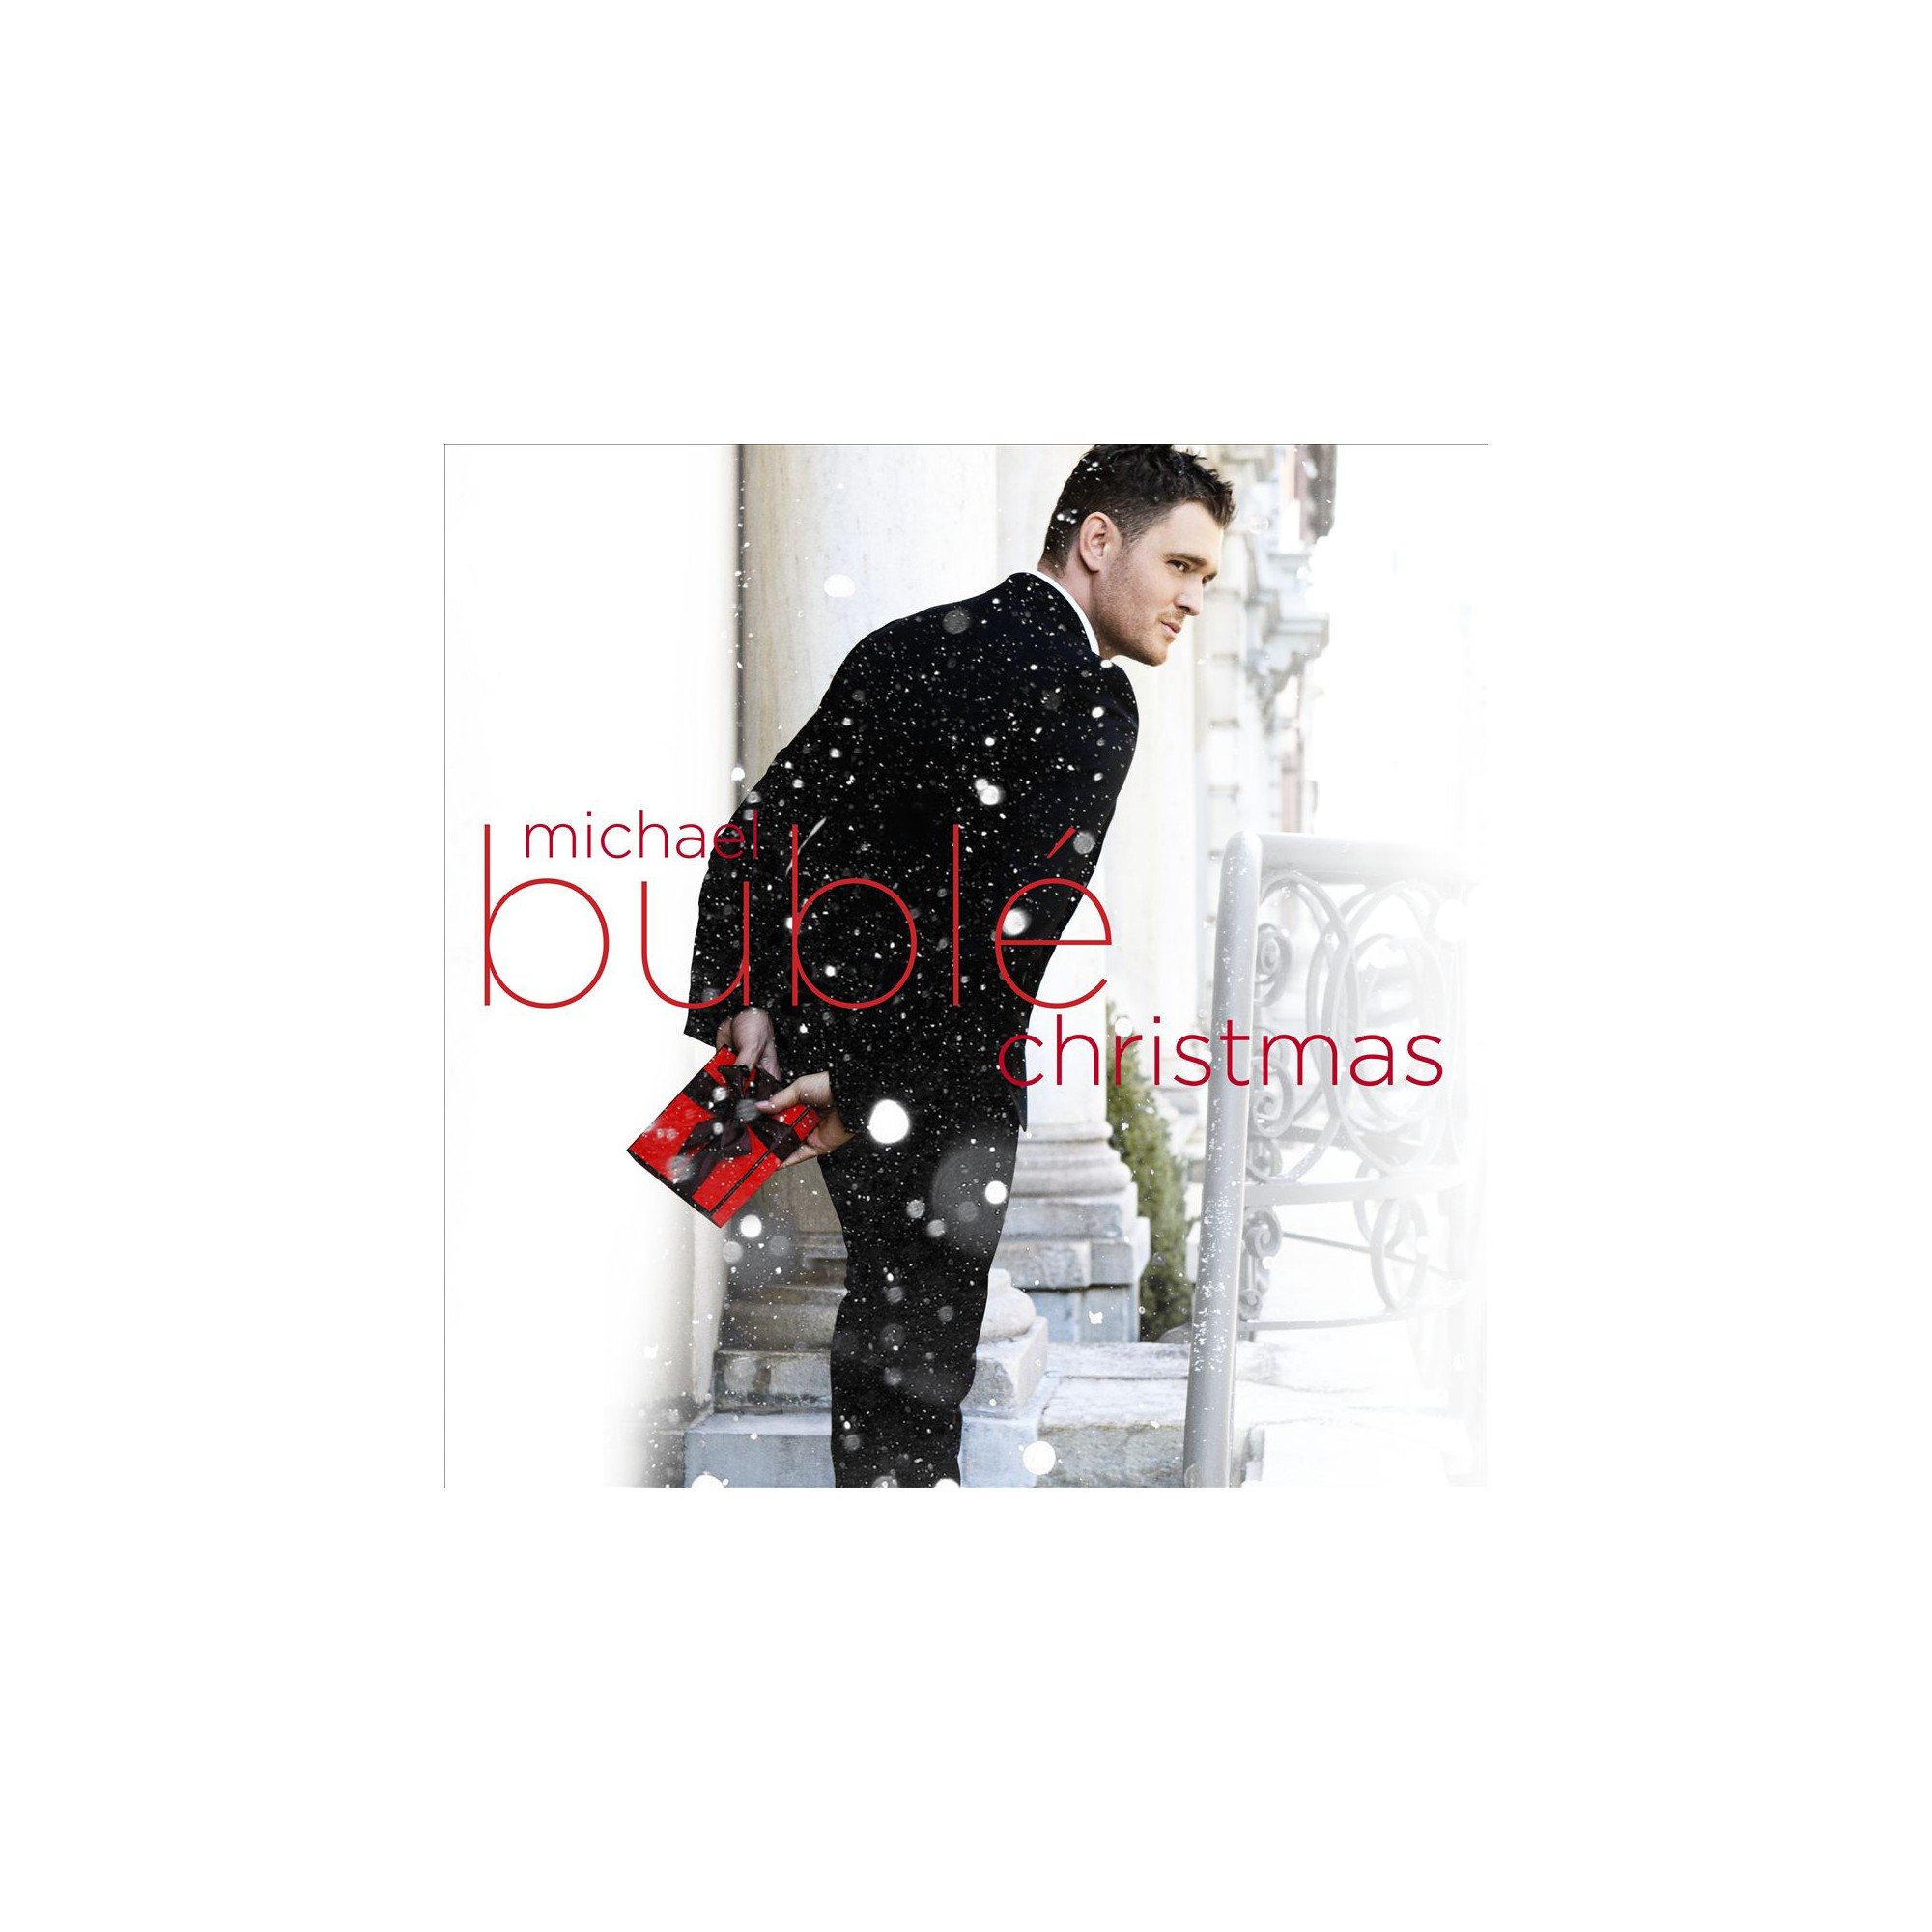 Michael buble - Christmas (Vinyl) | Pinterest | Christmas vinyl and ...